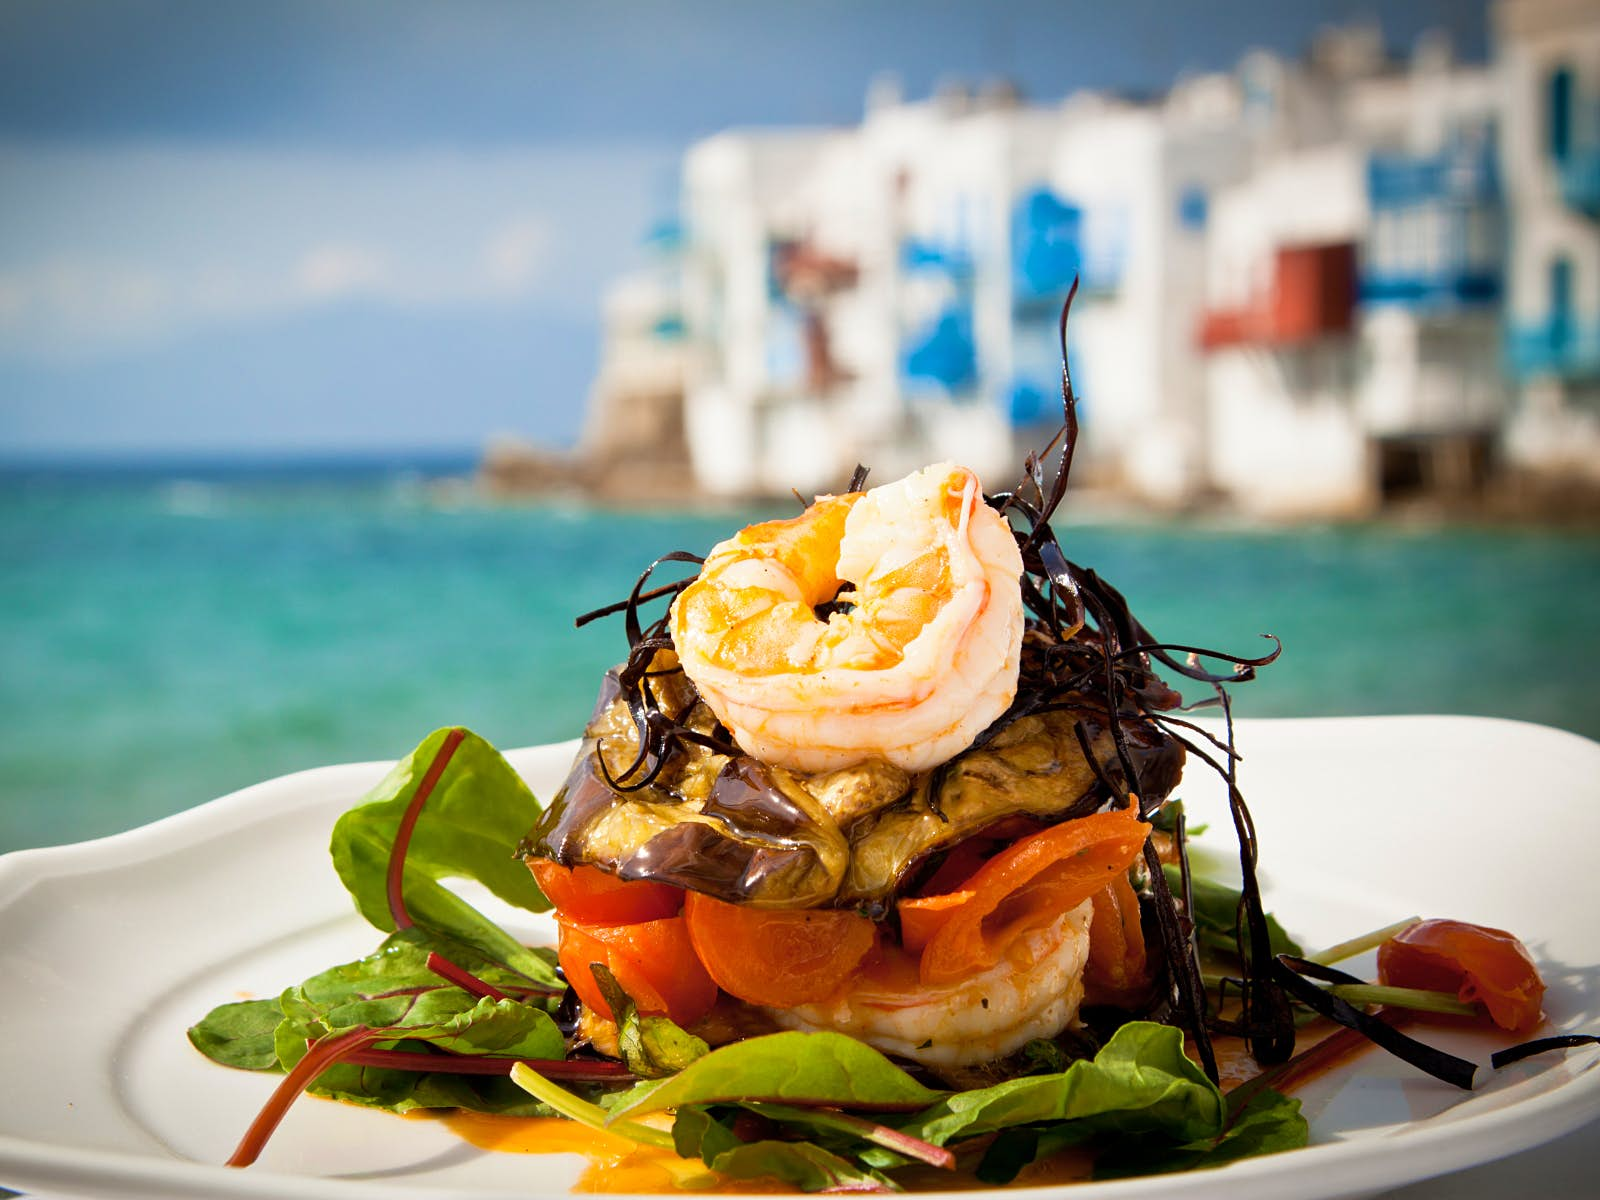 A plate of seafood on a white plate in front of the sea and white buildings which are blurred in the background. On the plate there are king prawns, aubergine, tomatoes, salad leaves and some dressing.